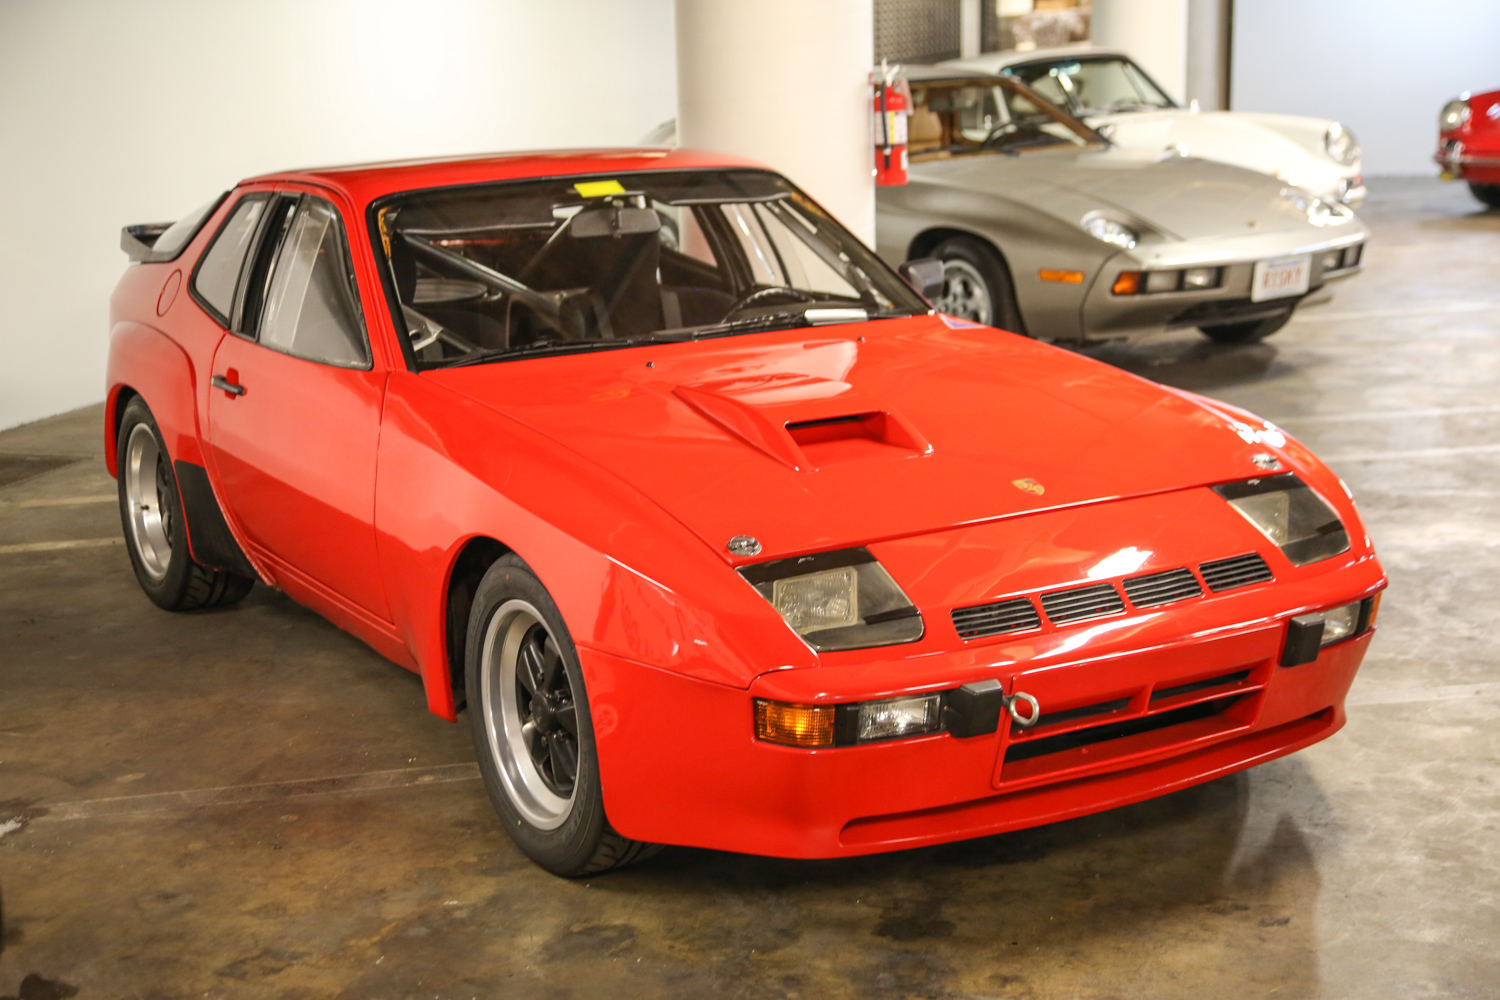 One of only 59 built, this 924 Carrera GTS is set apart by its unique headlights.